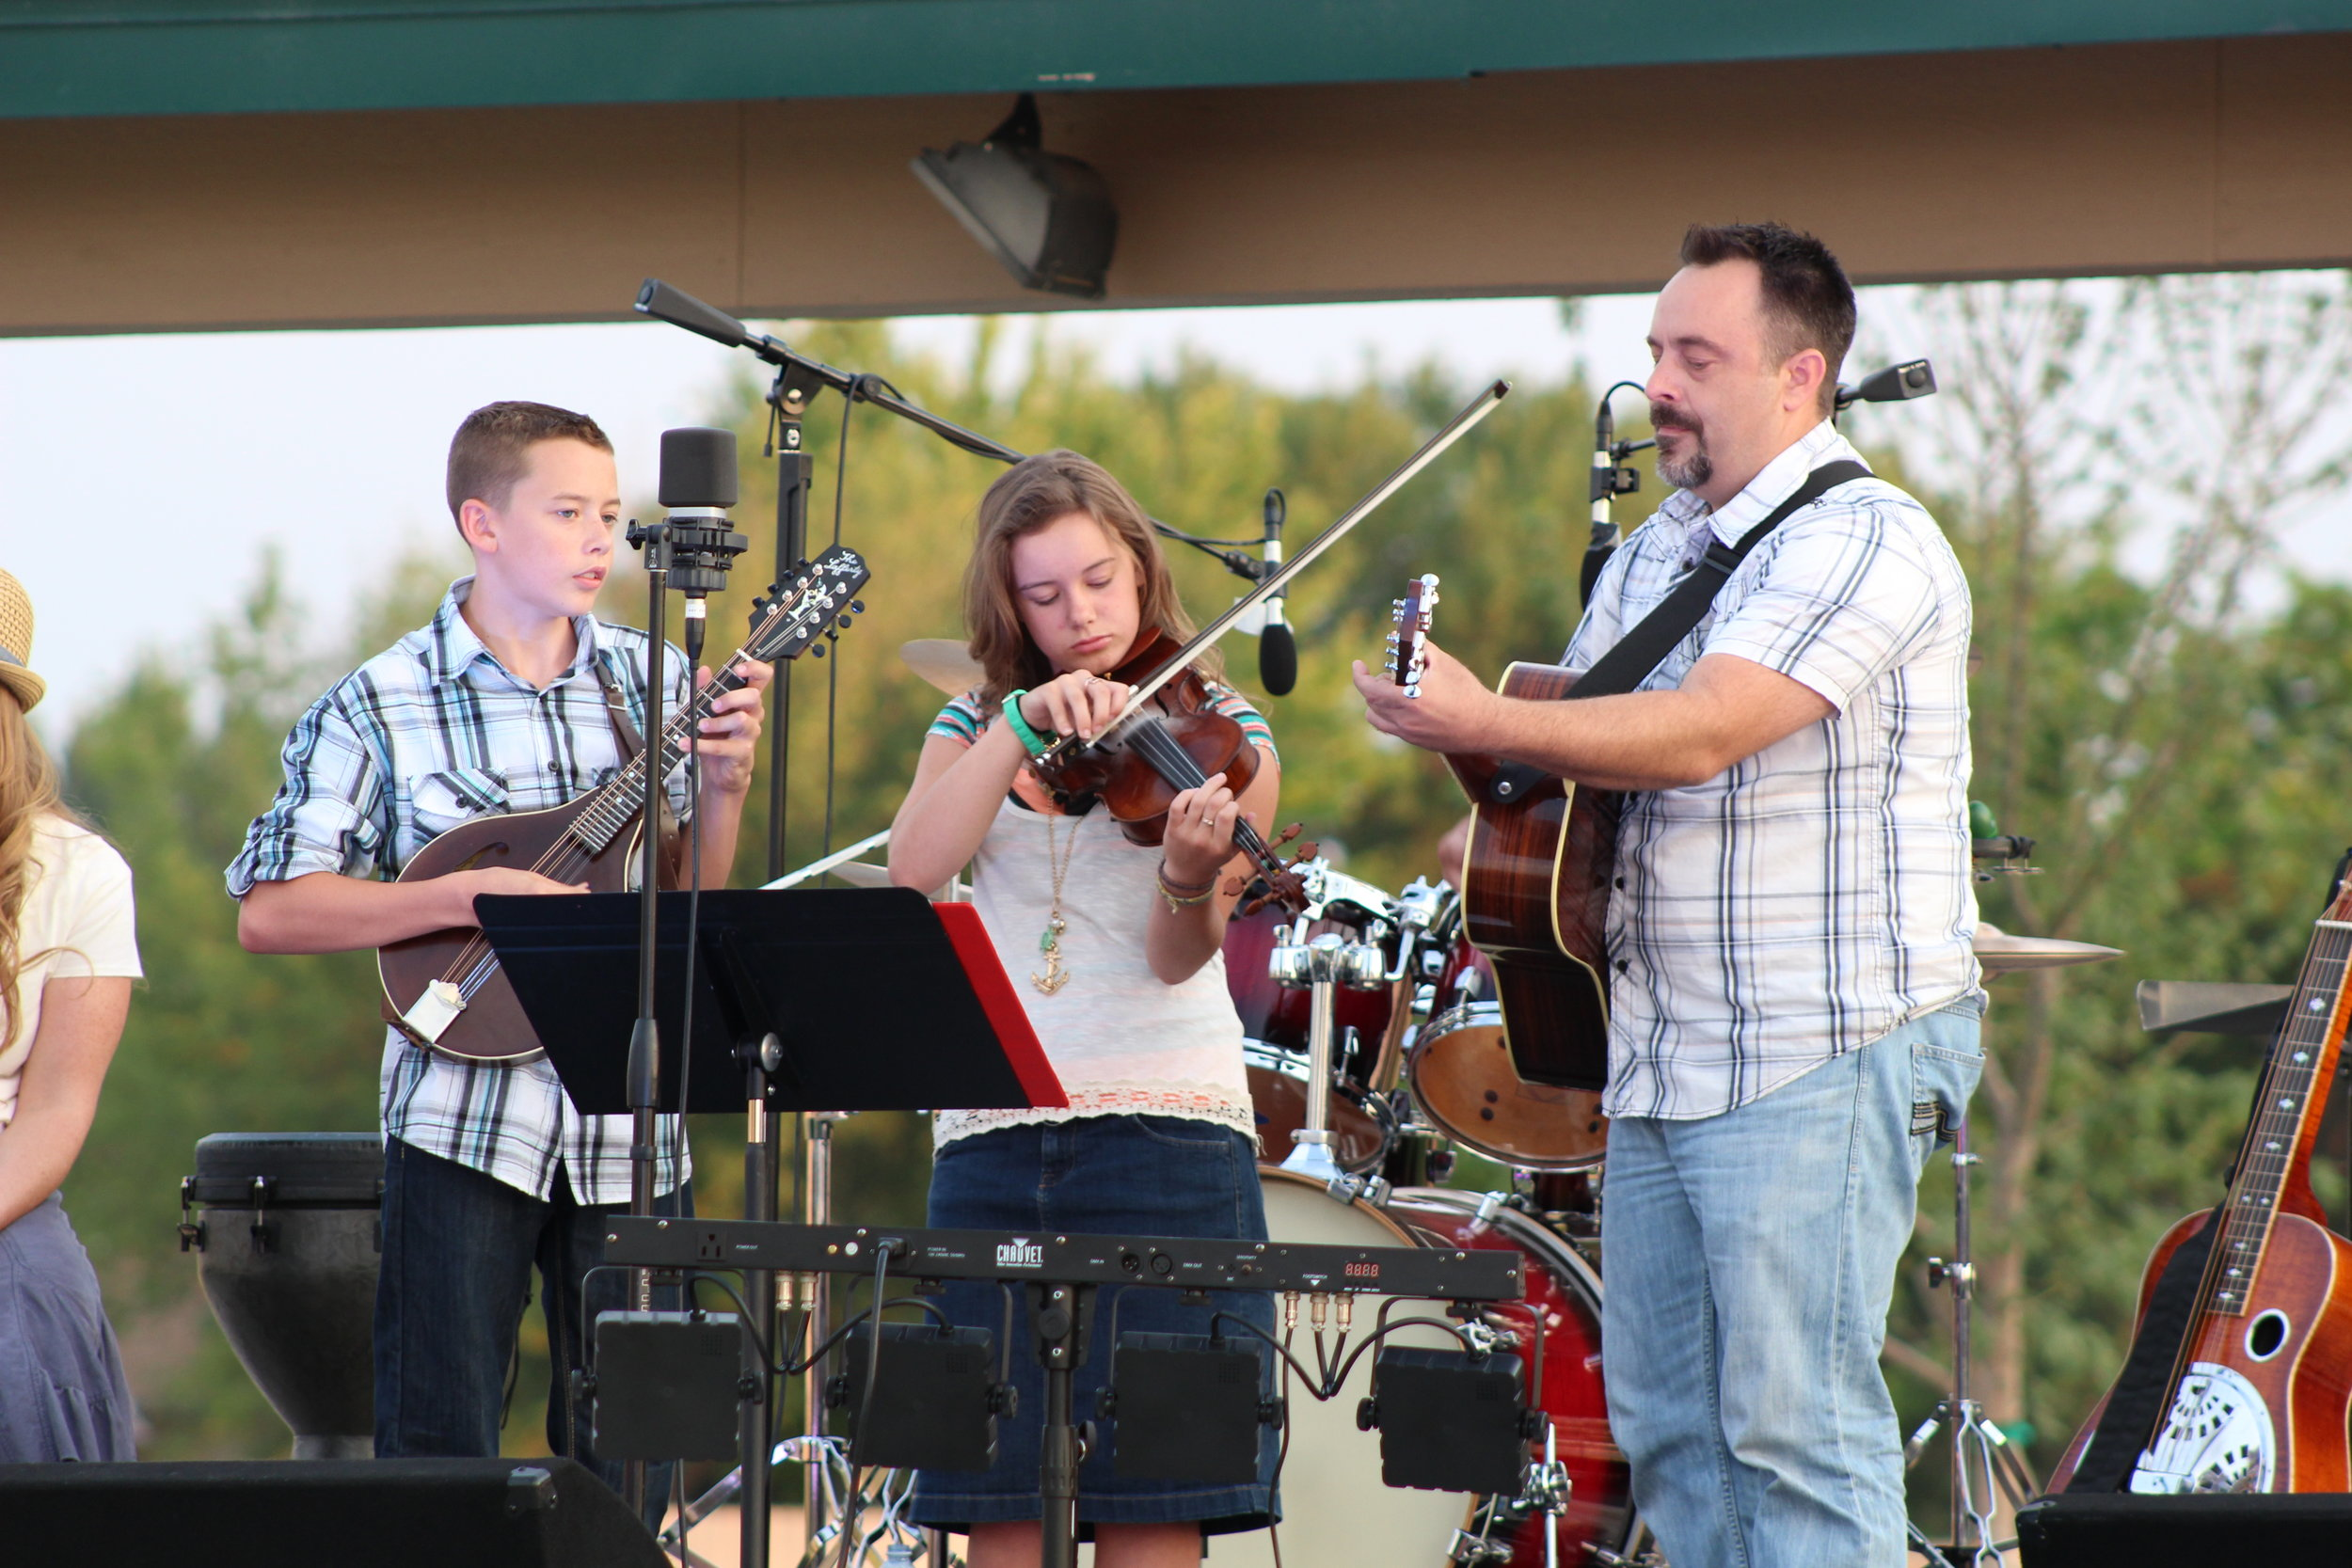 Karcher Summer Concerts - The Curtis Family Band